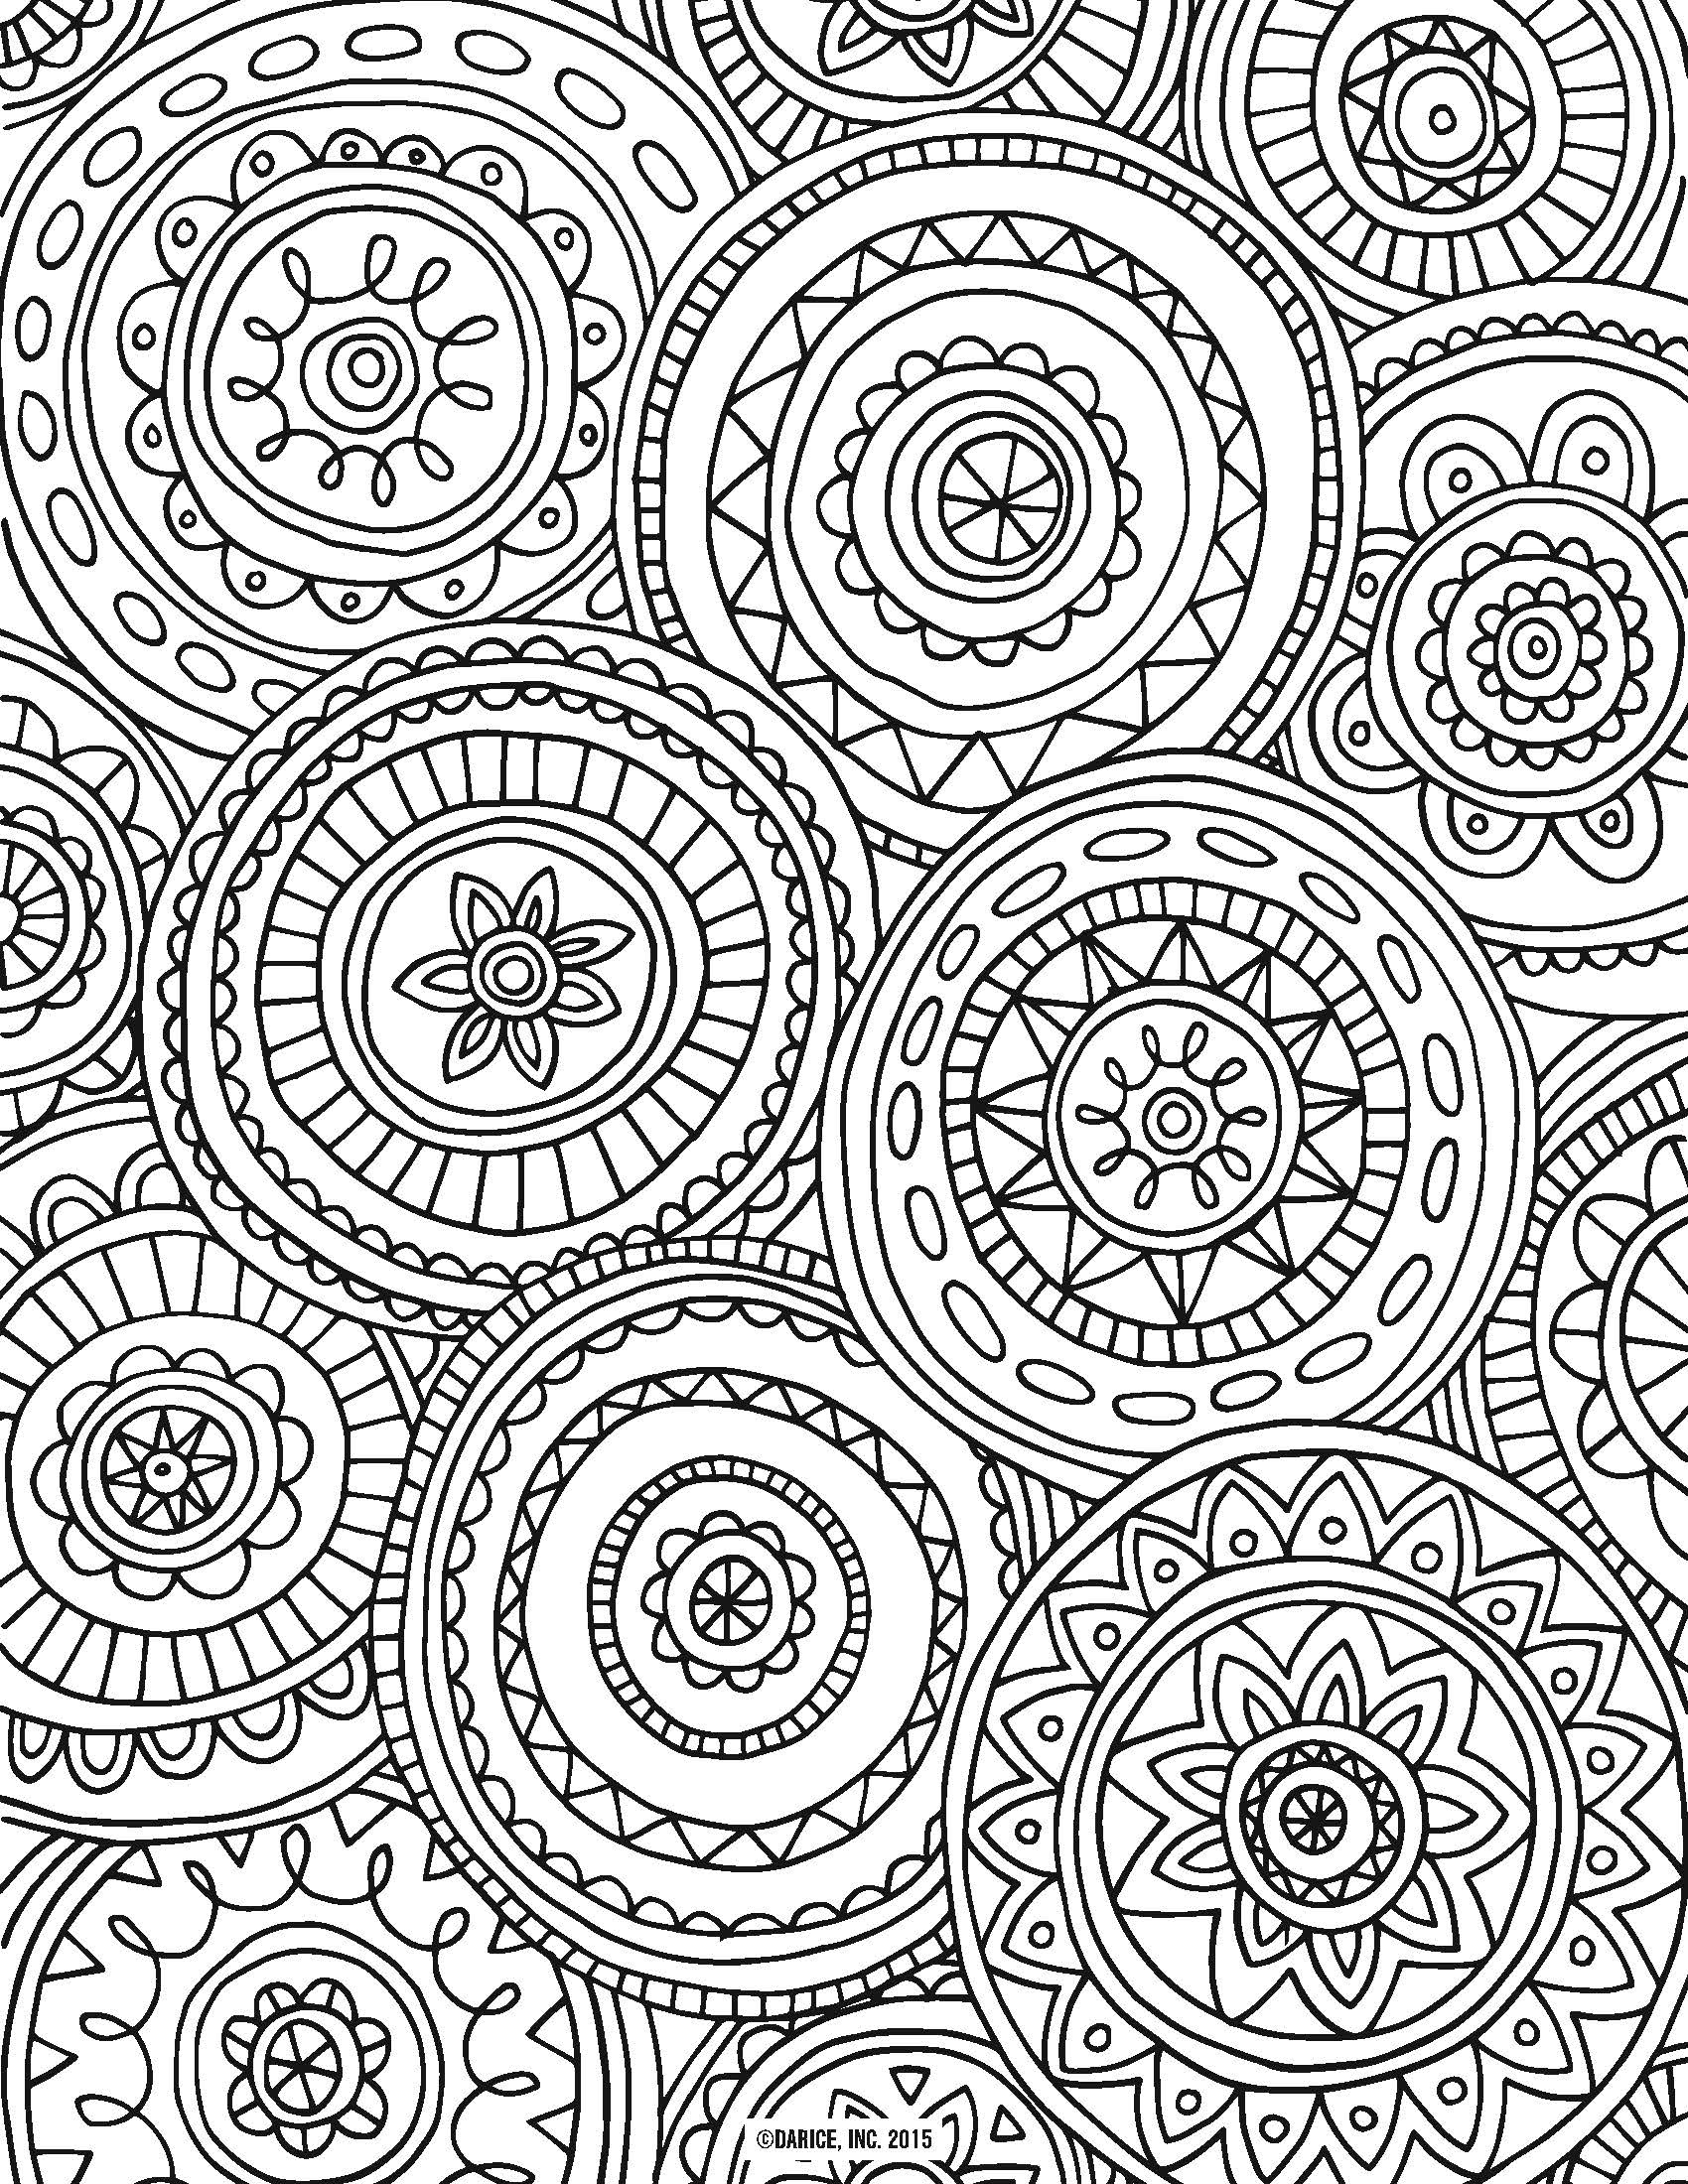 9 Free Printable Adult Coloring Pages | Pat Catan's Blog - Free Printable Coloring Pages